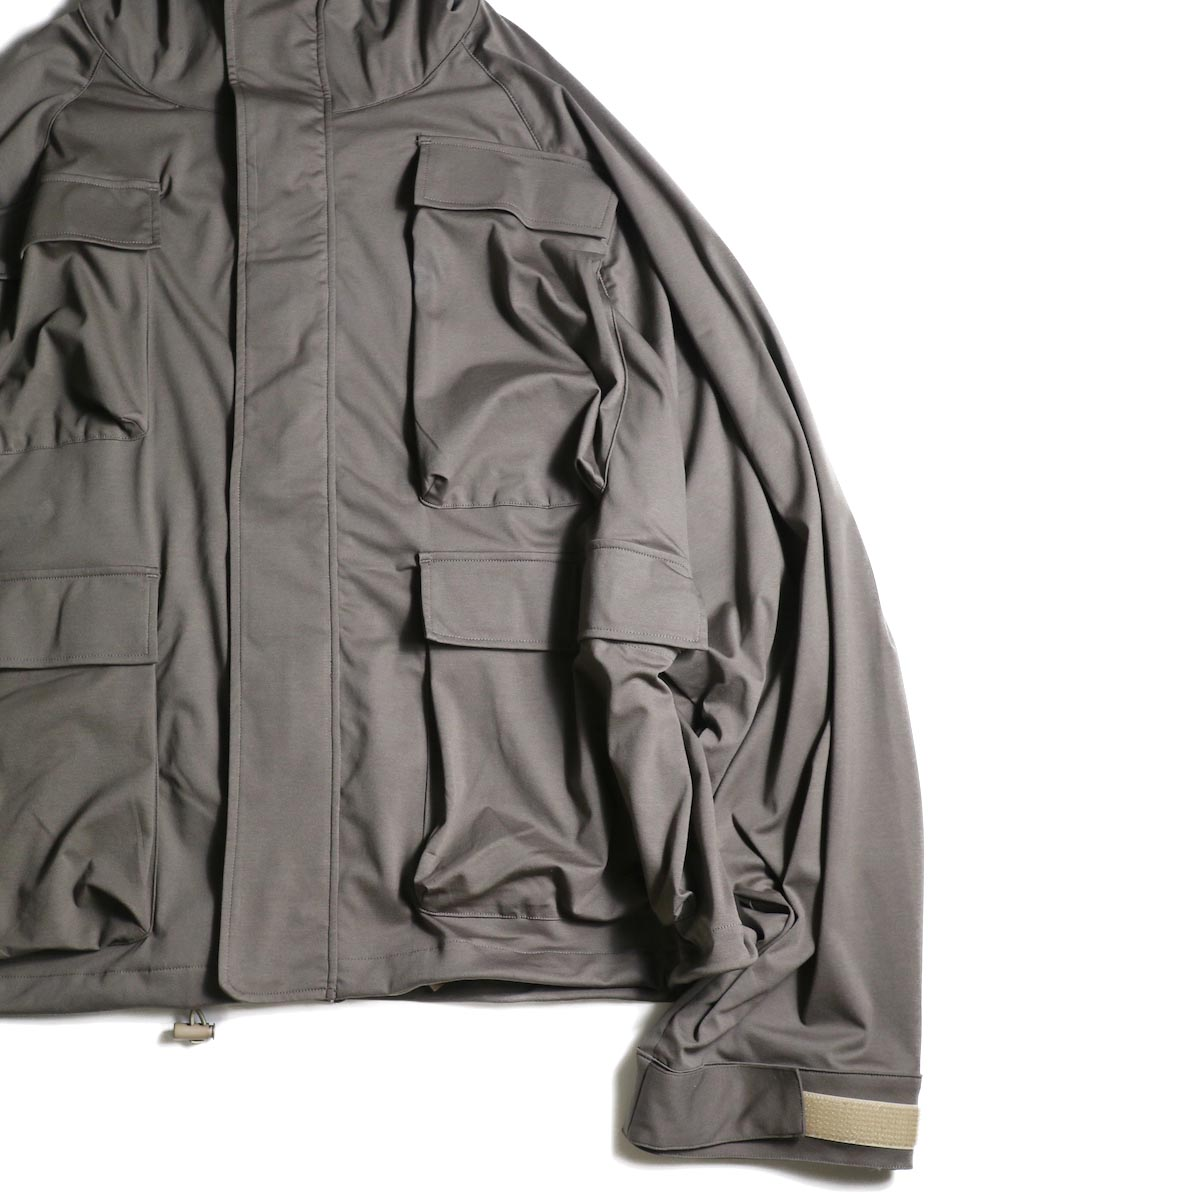 BASISBROEK / FORCE (Khaki)袖、裾